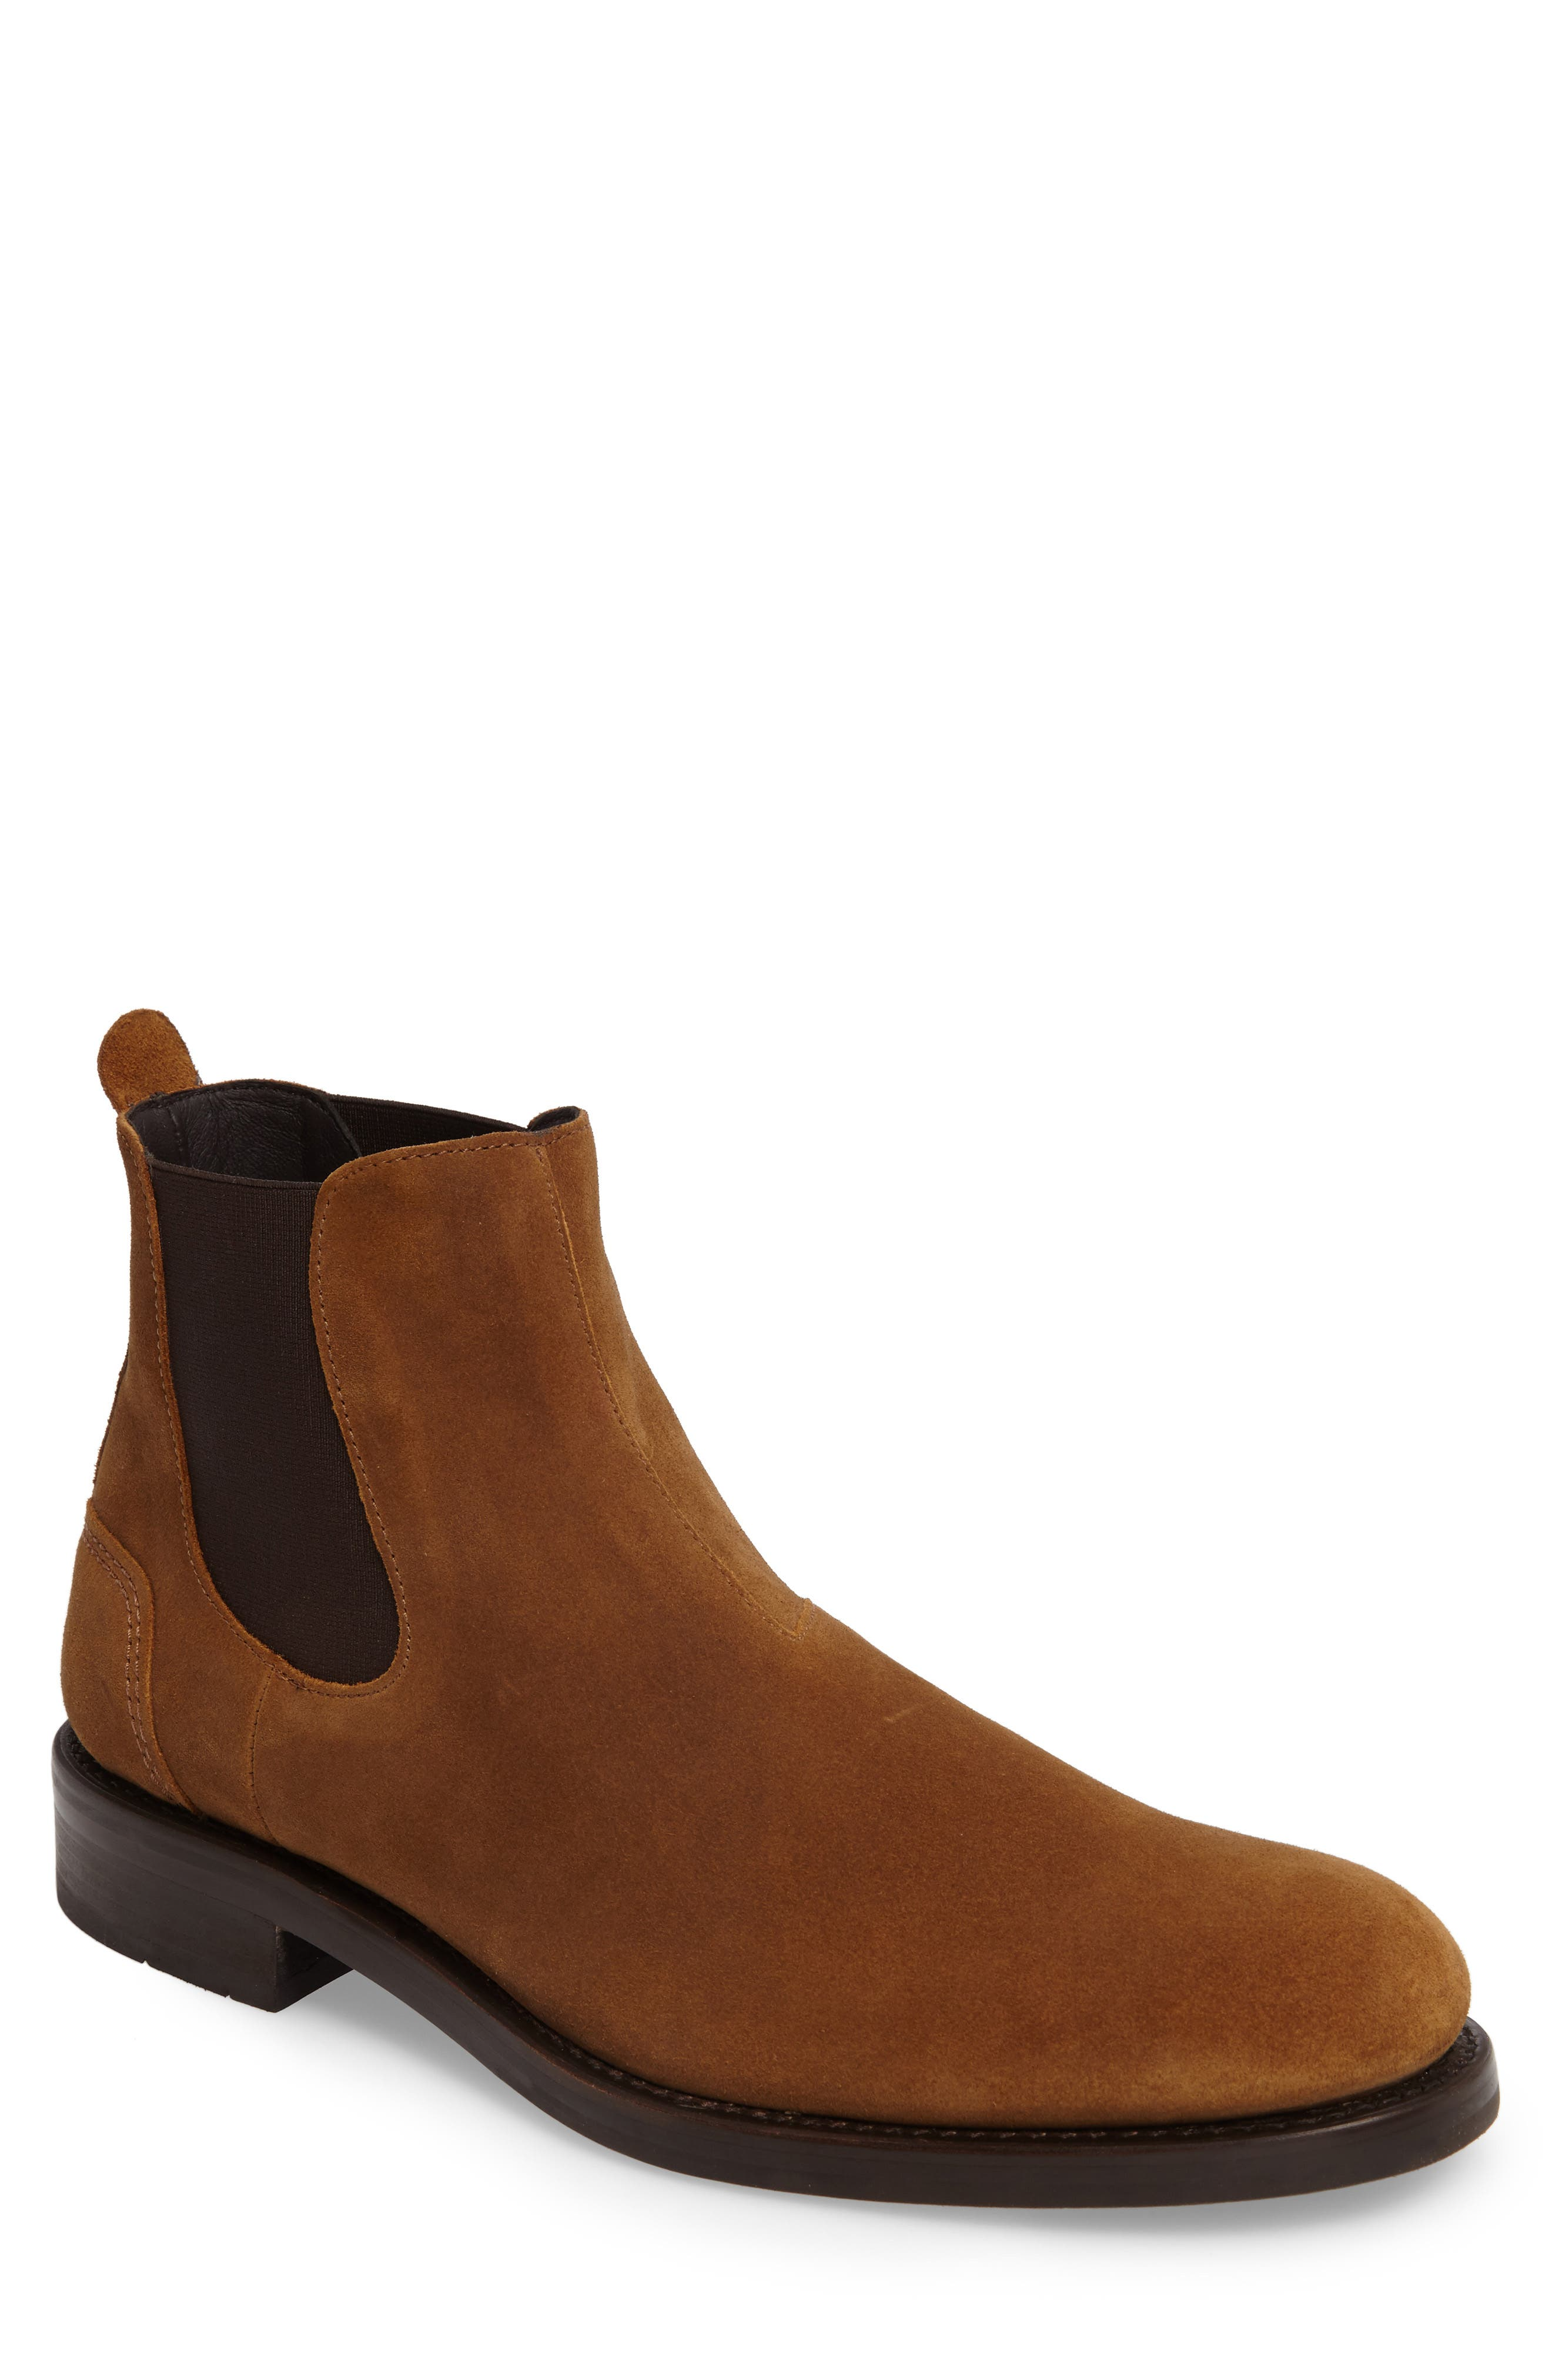 Main Image - Wolverine Montague Chelsea Boot